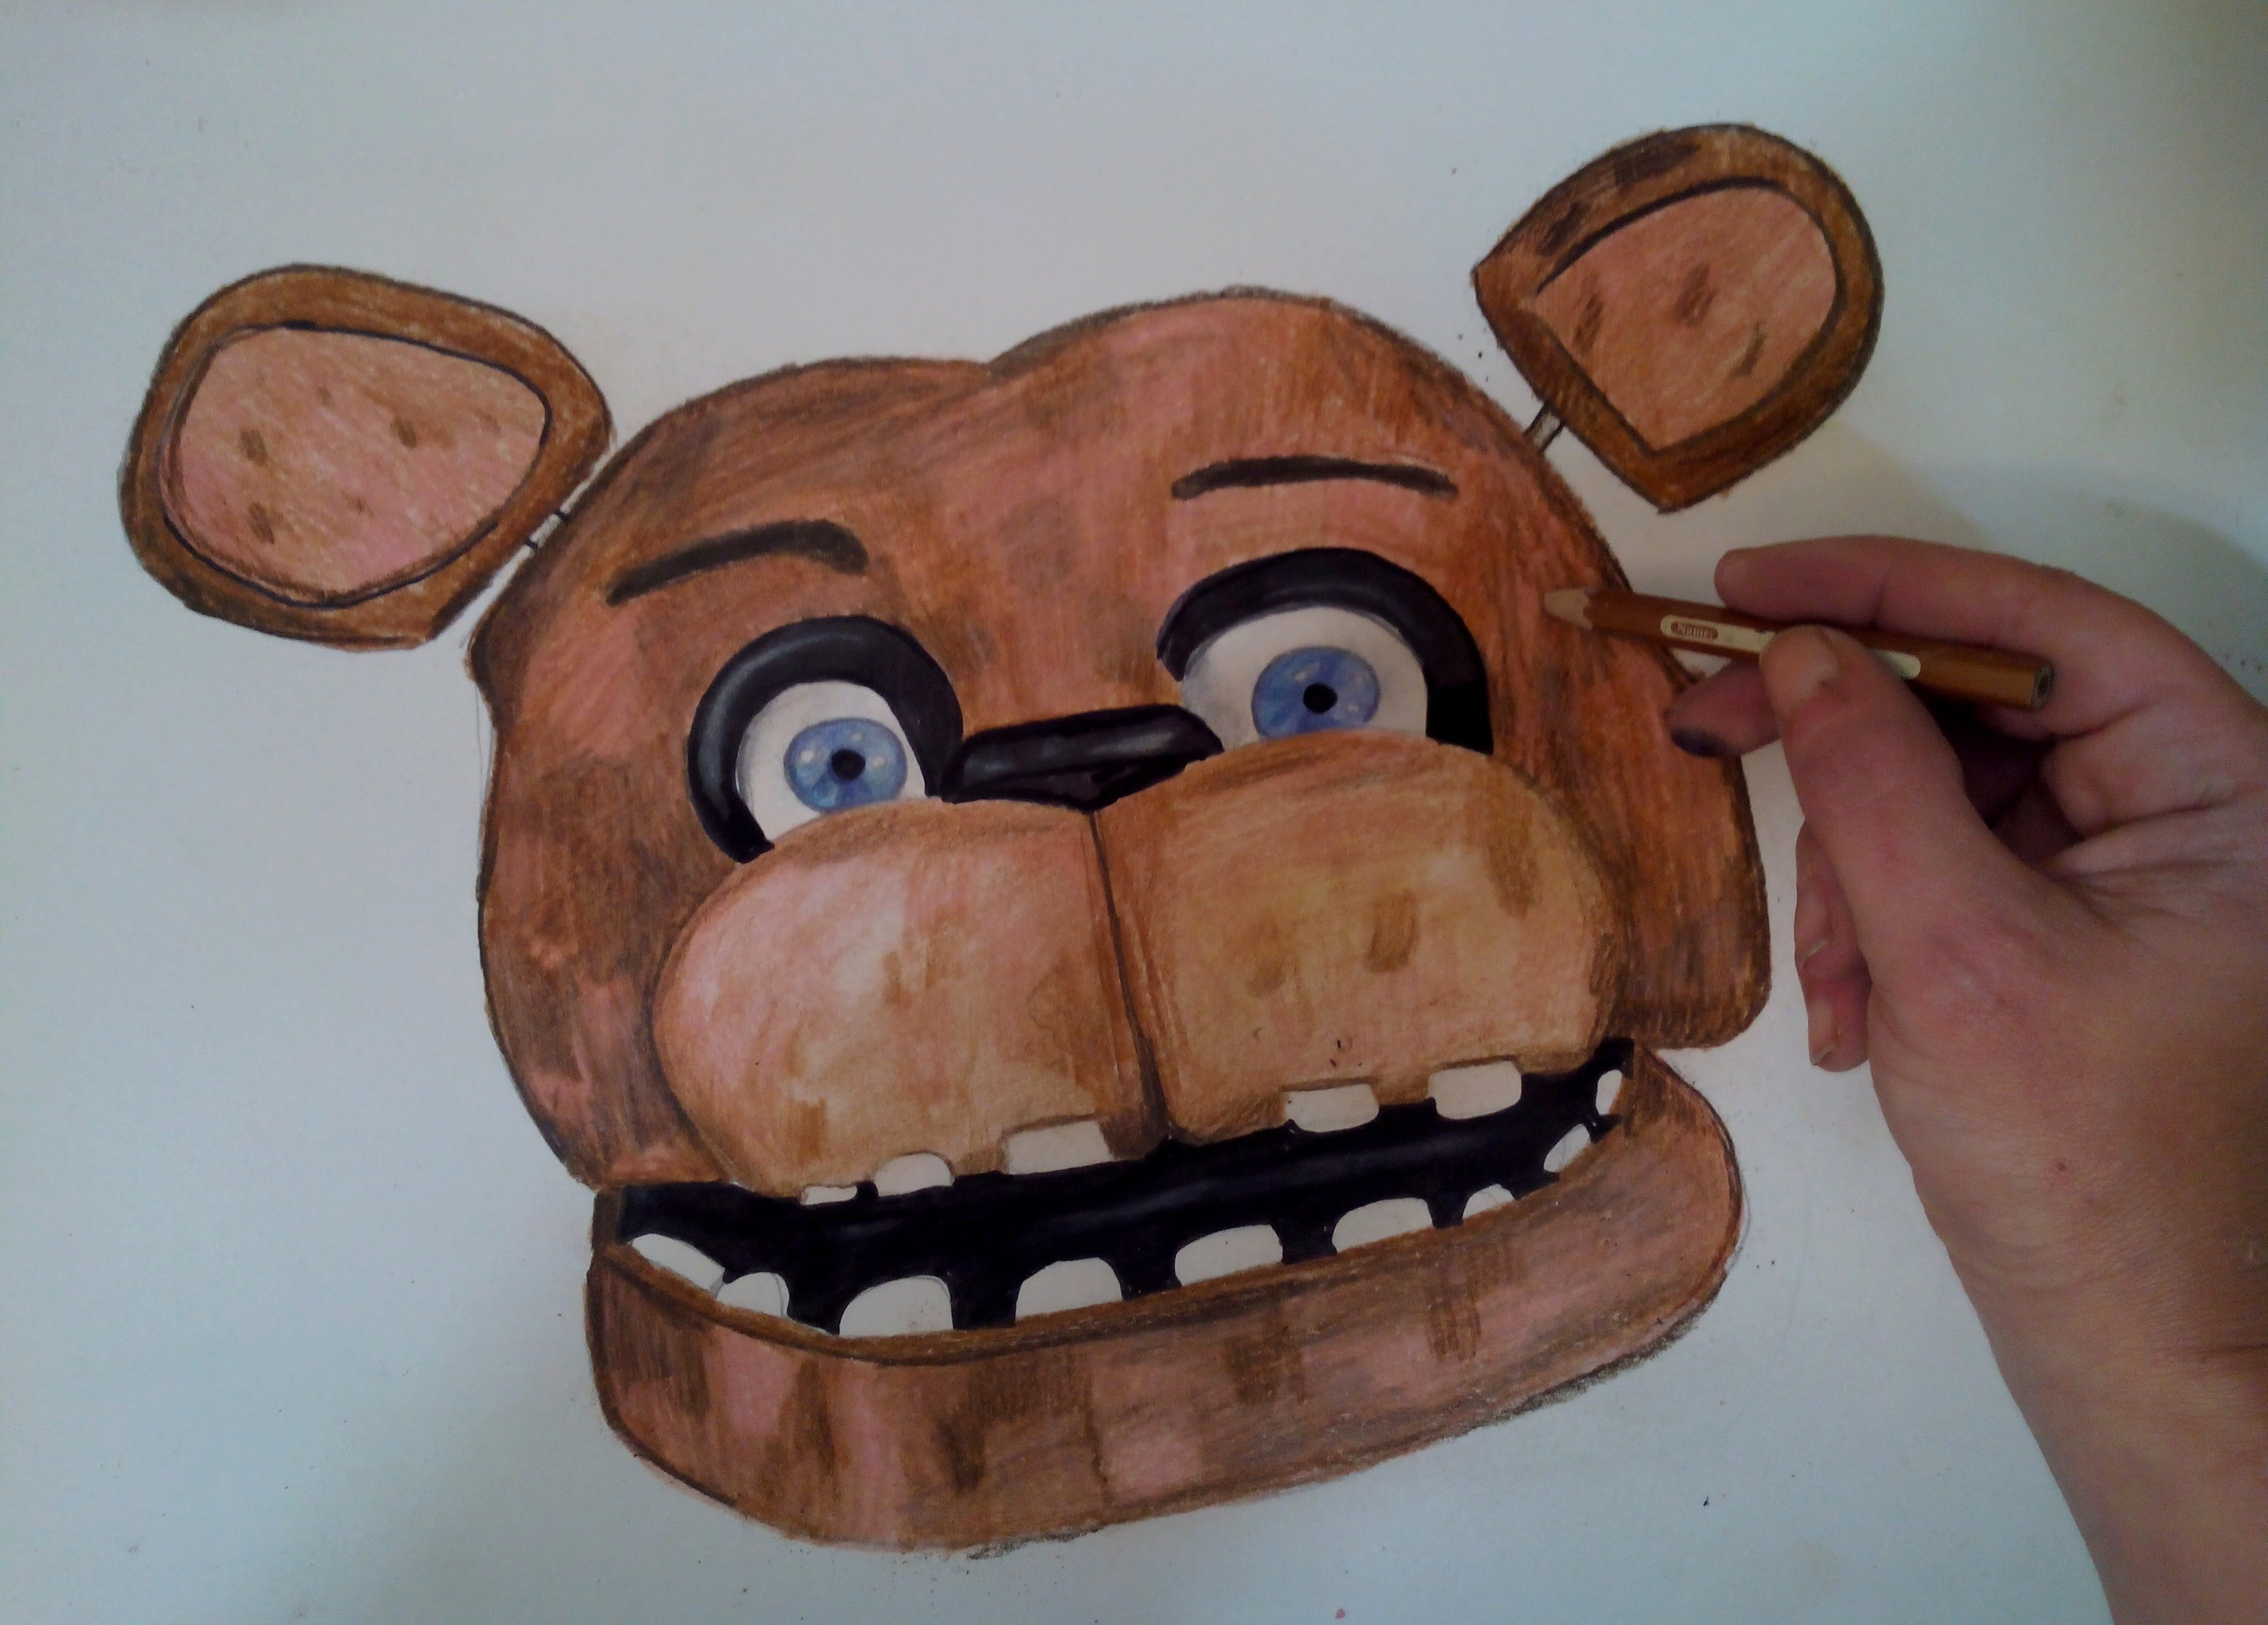 freddy fazbear drawing at getdrawings com free for personal use